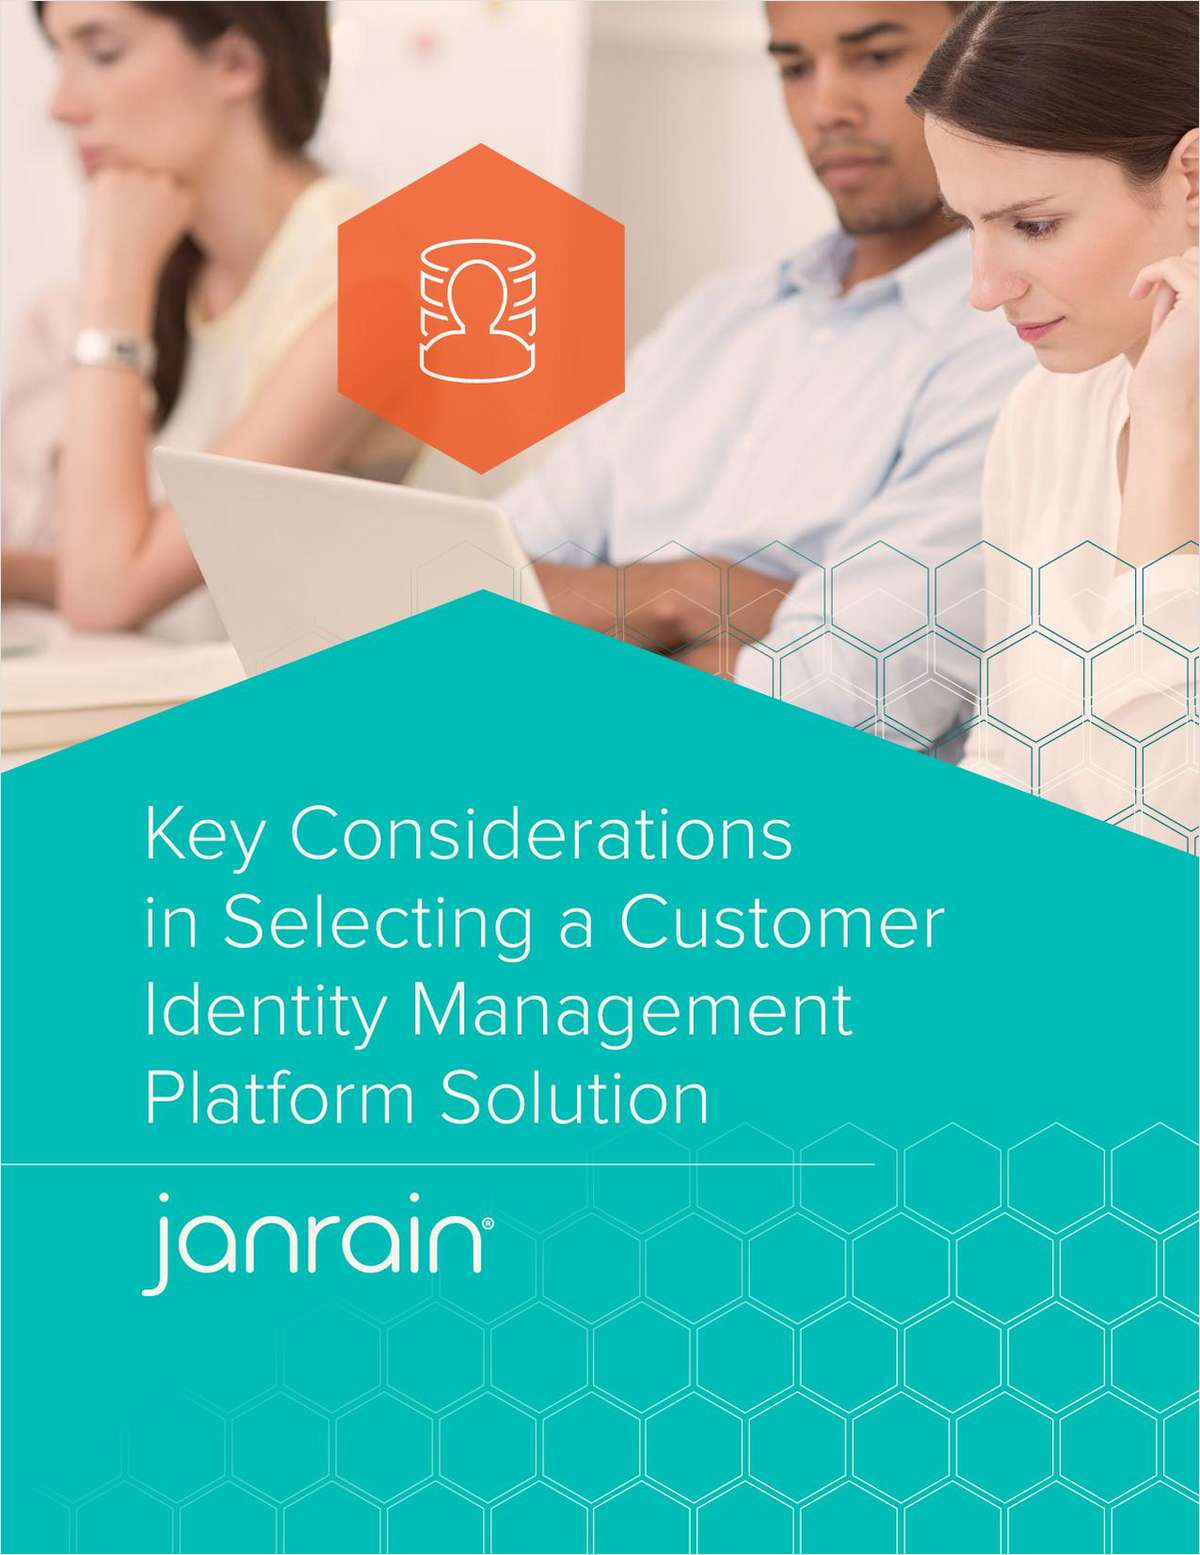 Key Considerations in Selecting a Customer Identity Management Platform Solution